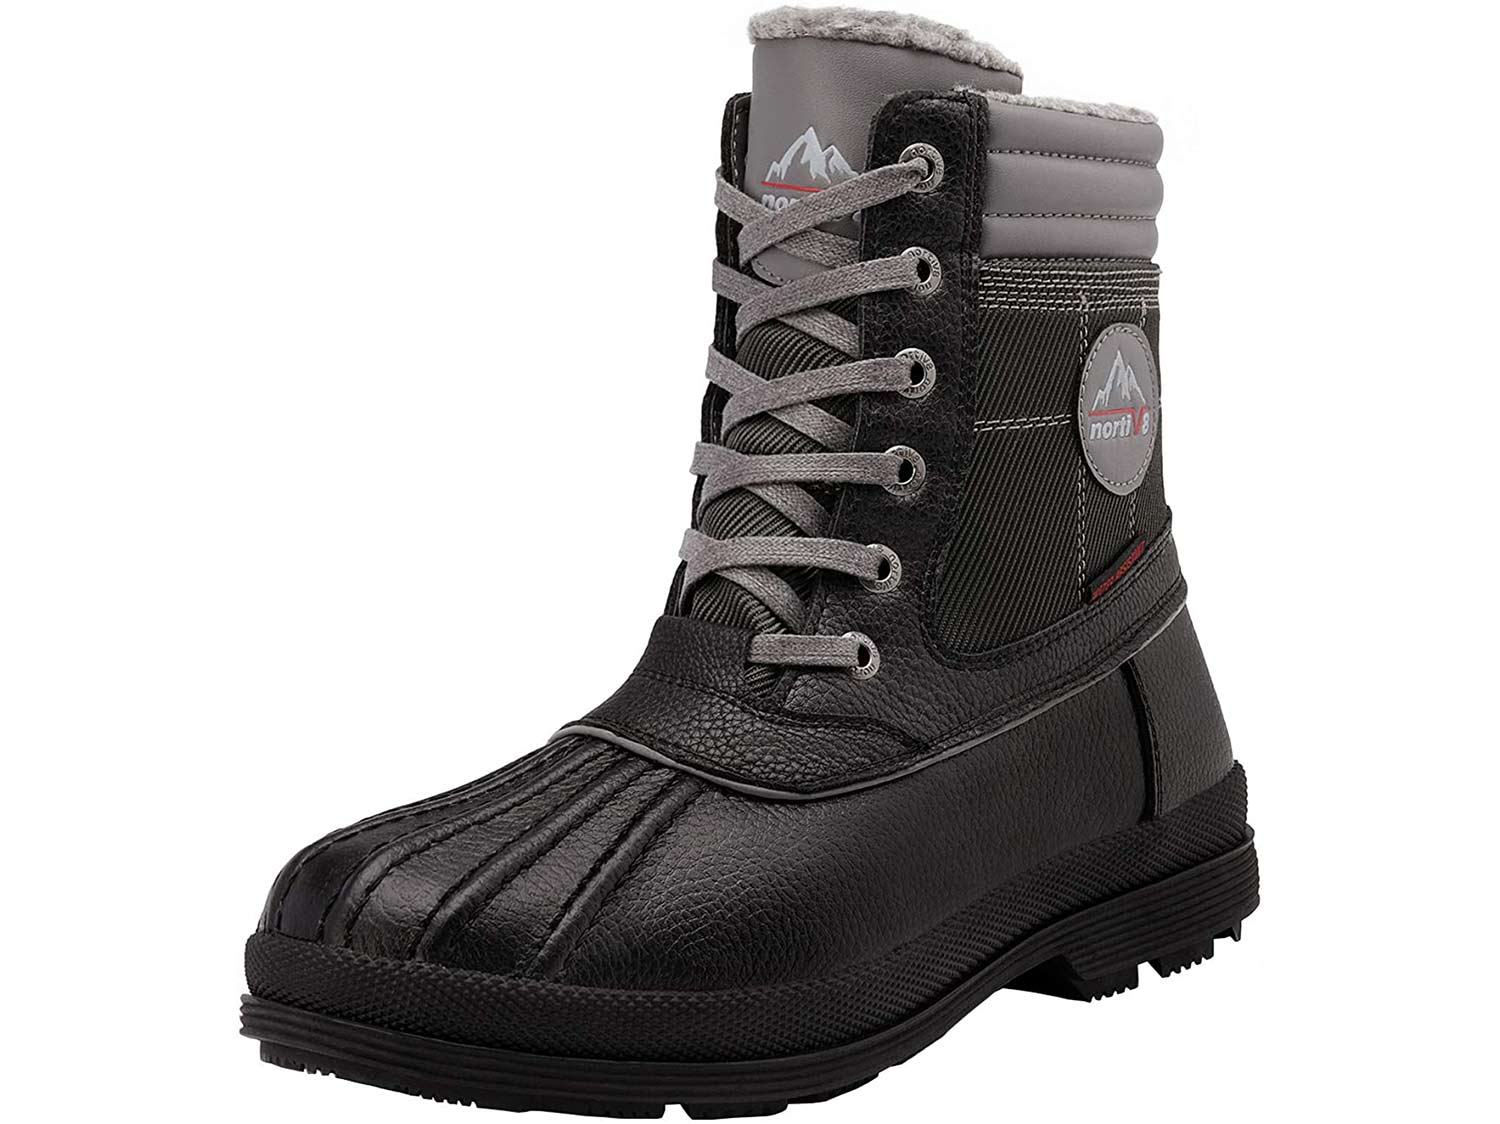 NORTIV 8 Men's Insulated Warm Winter Snow Boots